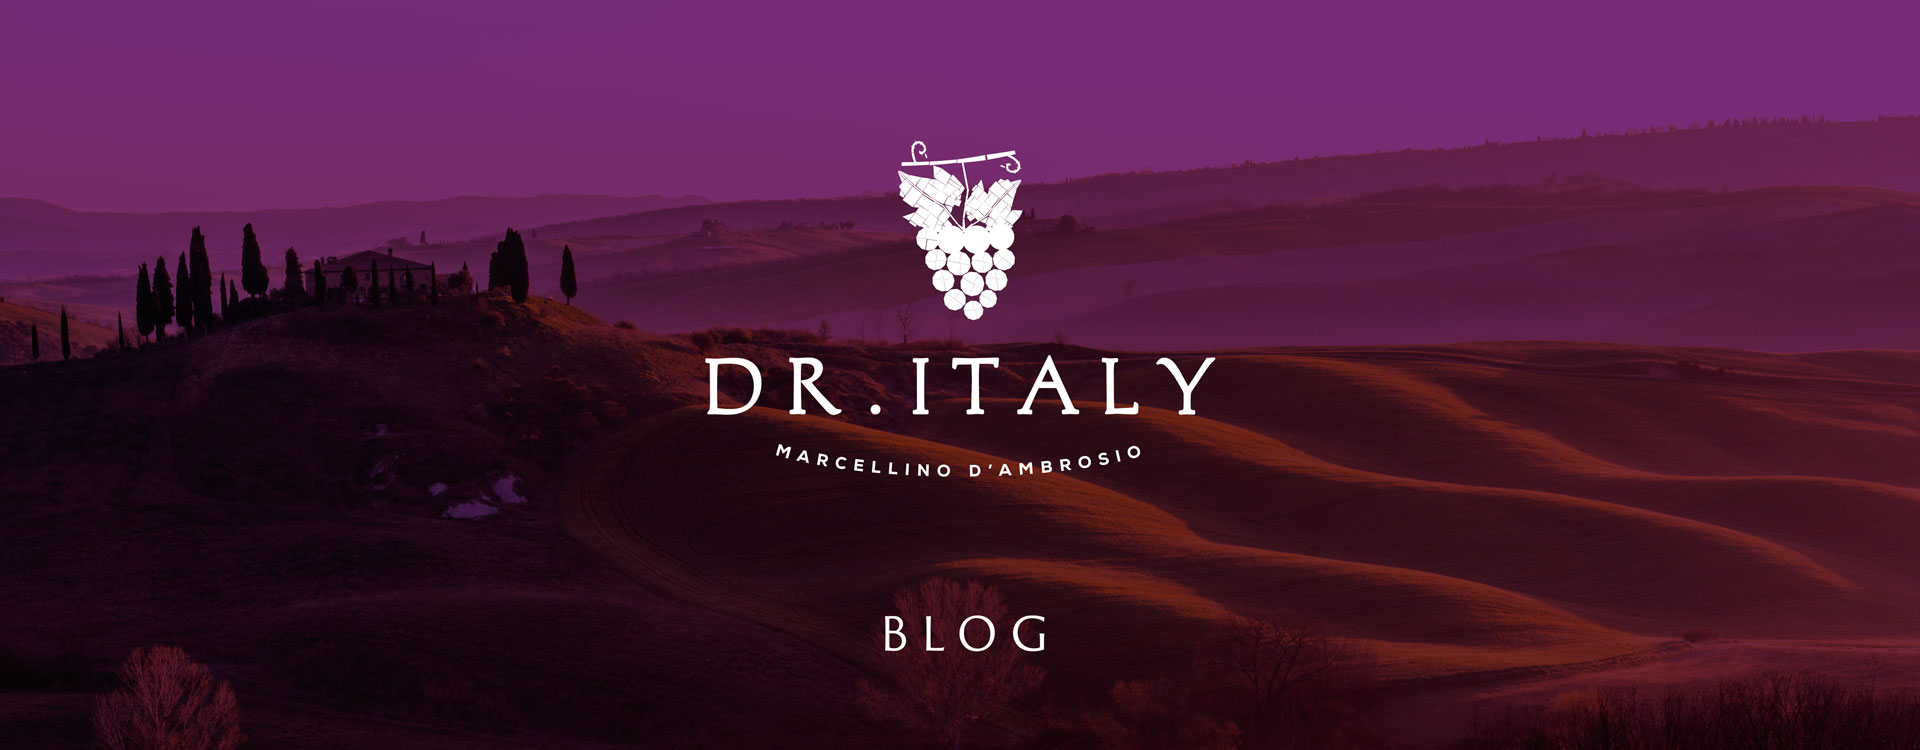 Dr. Italy's Blog